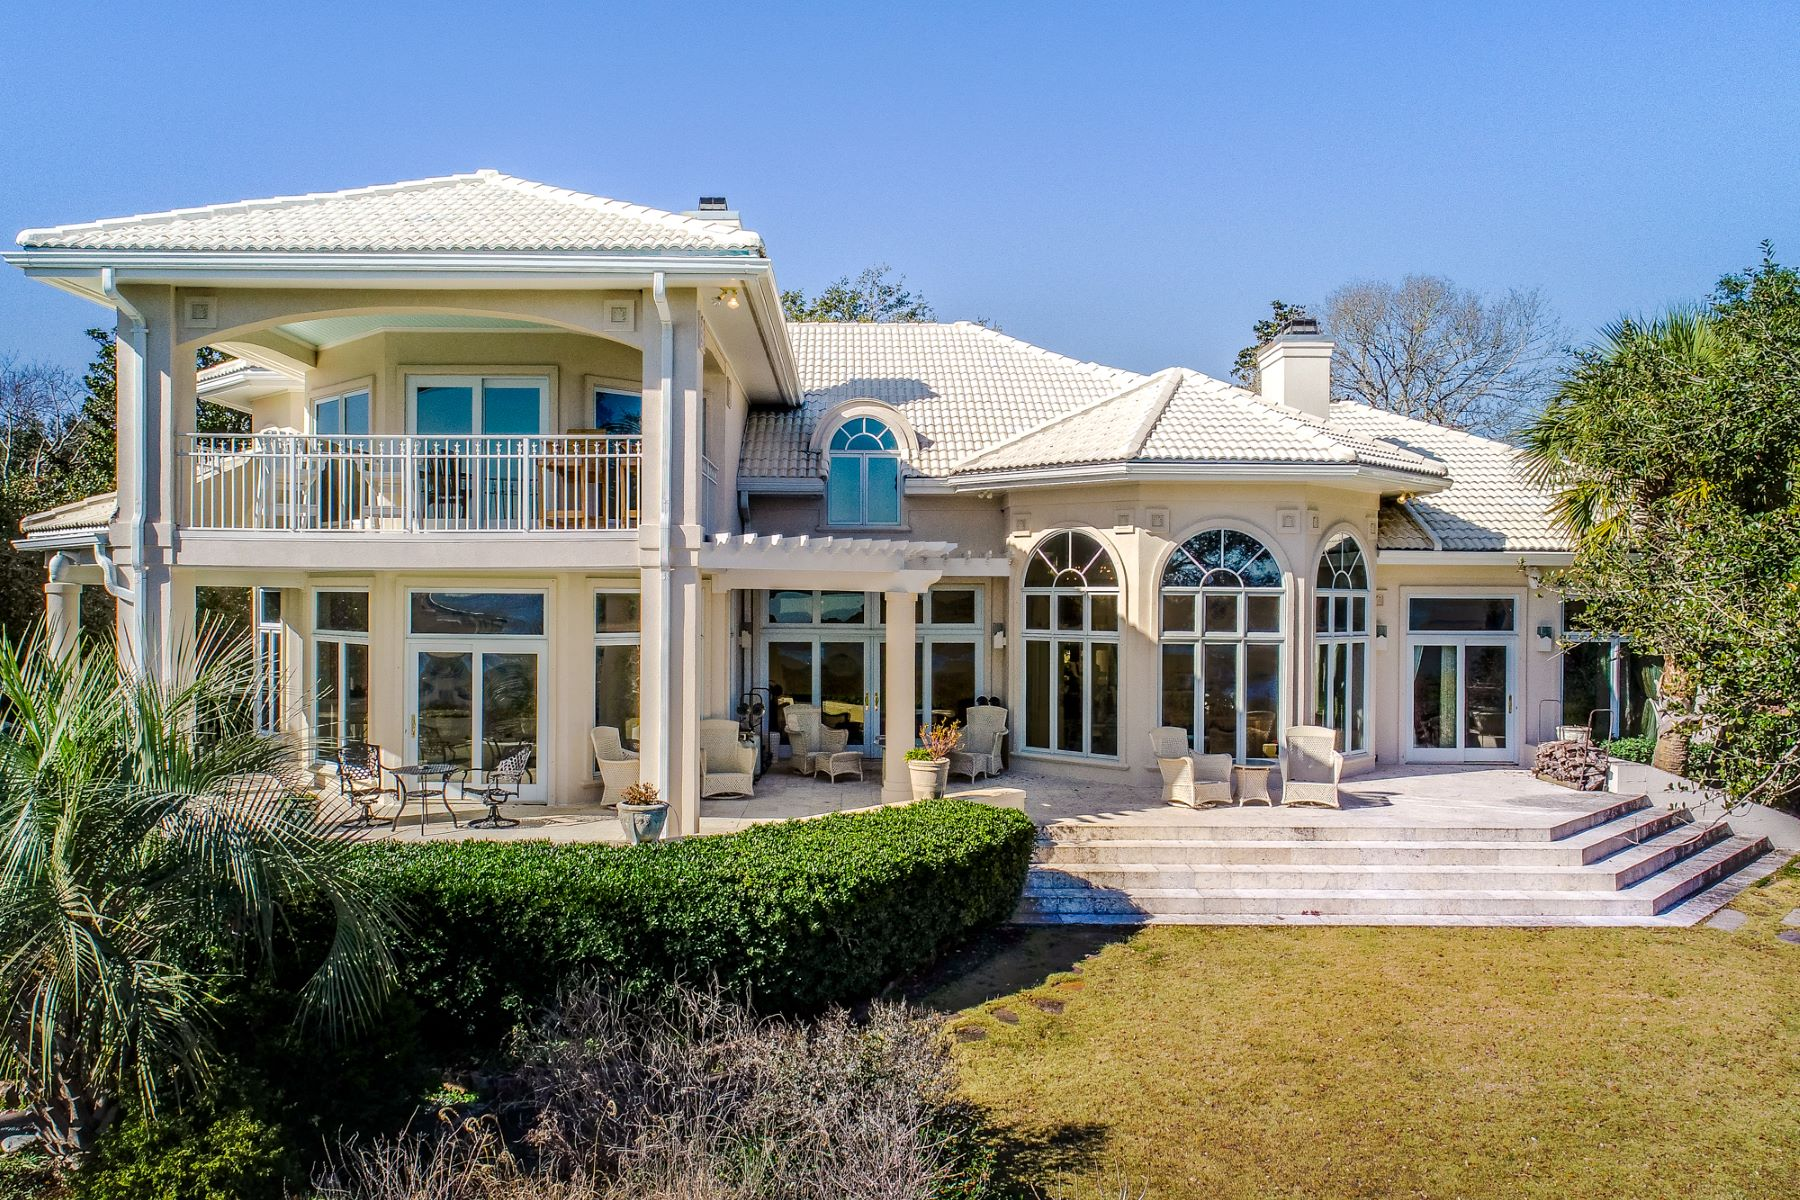 Single Family Homes for Sale at Classic Mediterranean-Style Home With Intracoastal Views 1051 Ocean Ridge Drive Wilmington, North Carolina 28405 United States